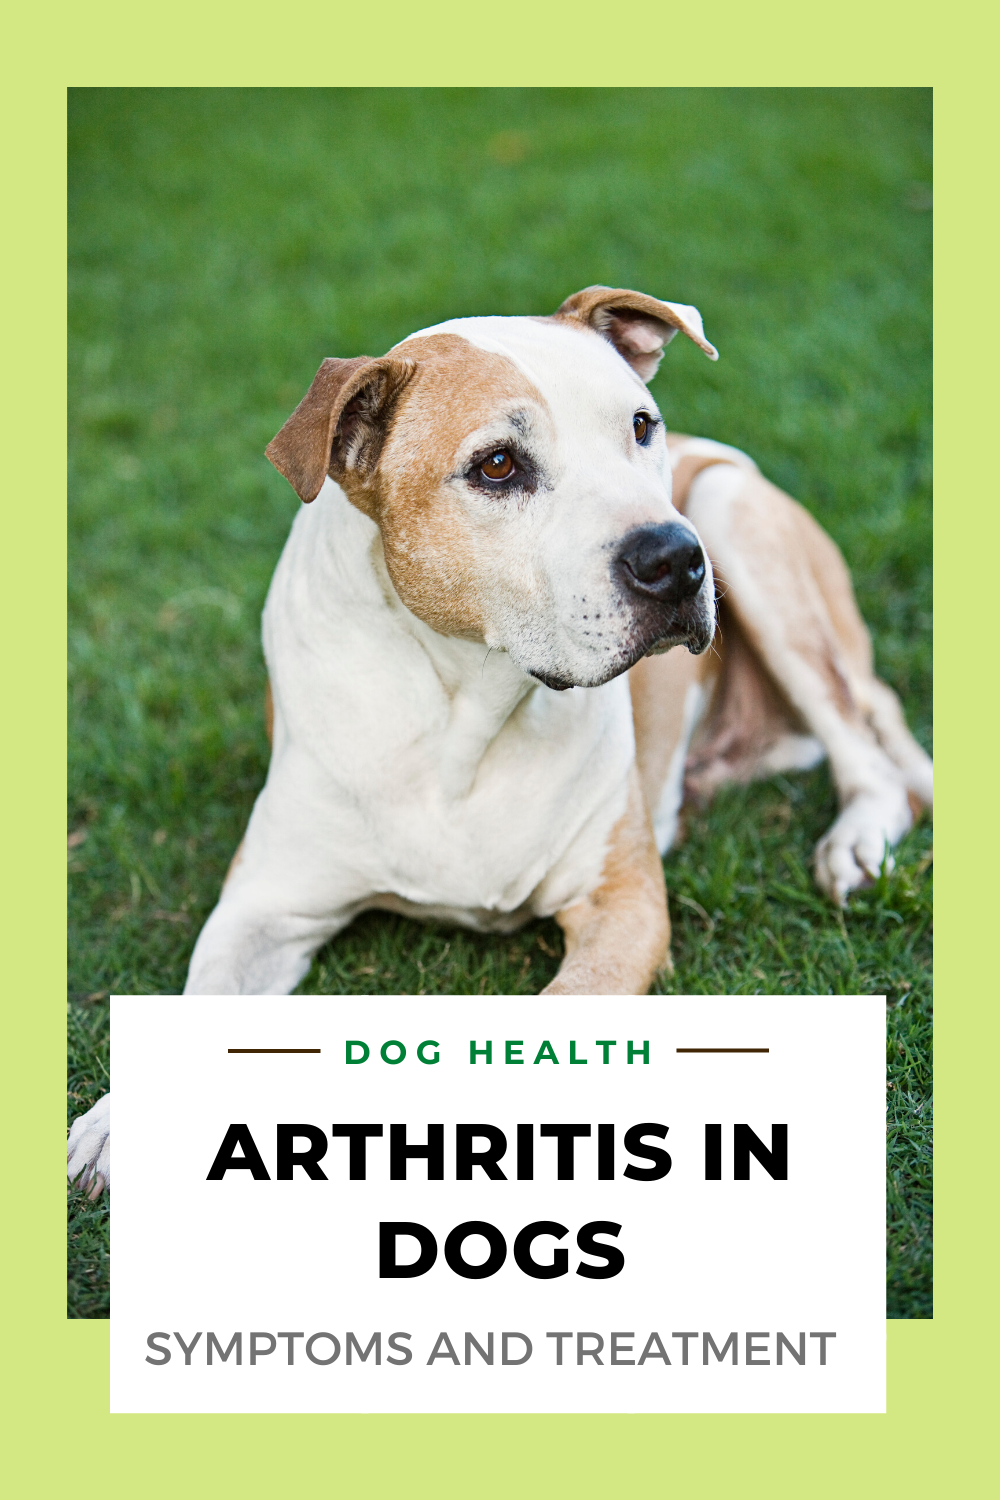 Dog Health How To Treat Arthritis In Dogs Common Signs Dog Arthritis Natural Dog Health Dog Health Tips